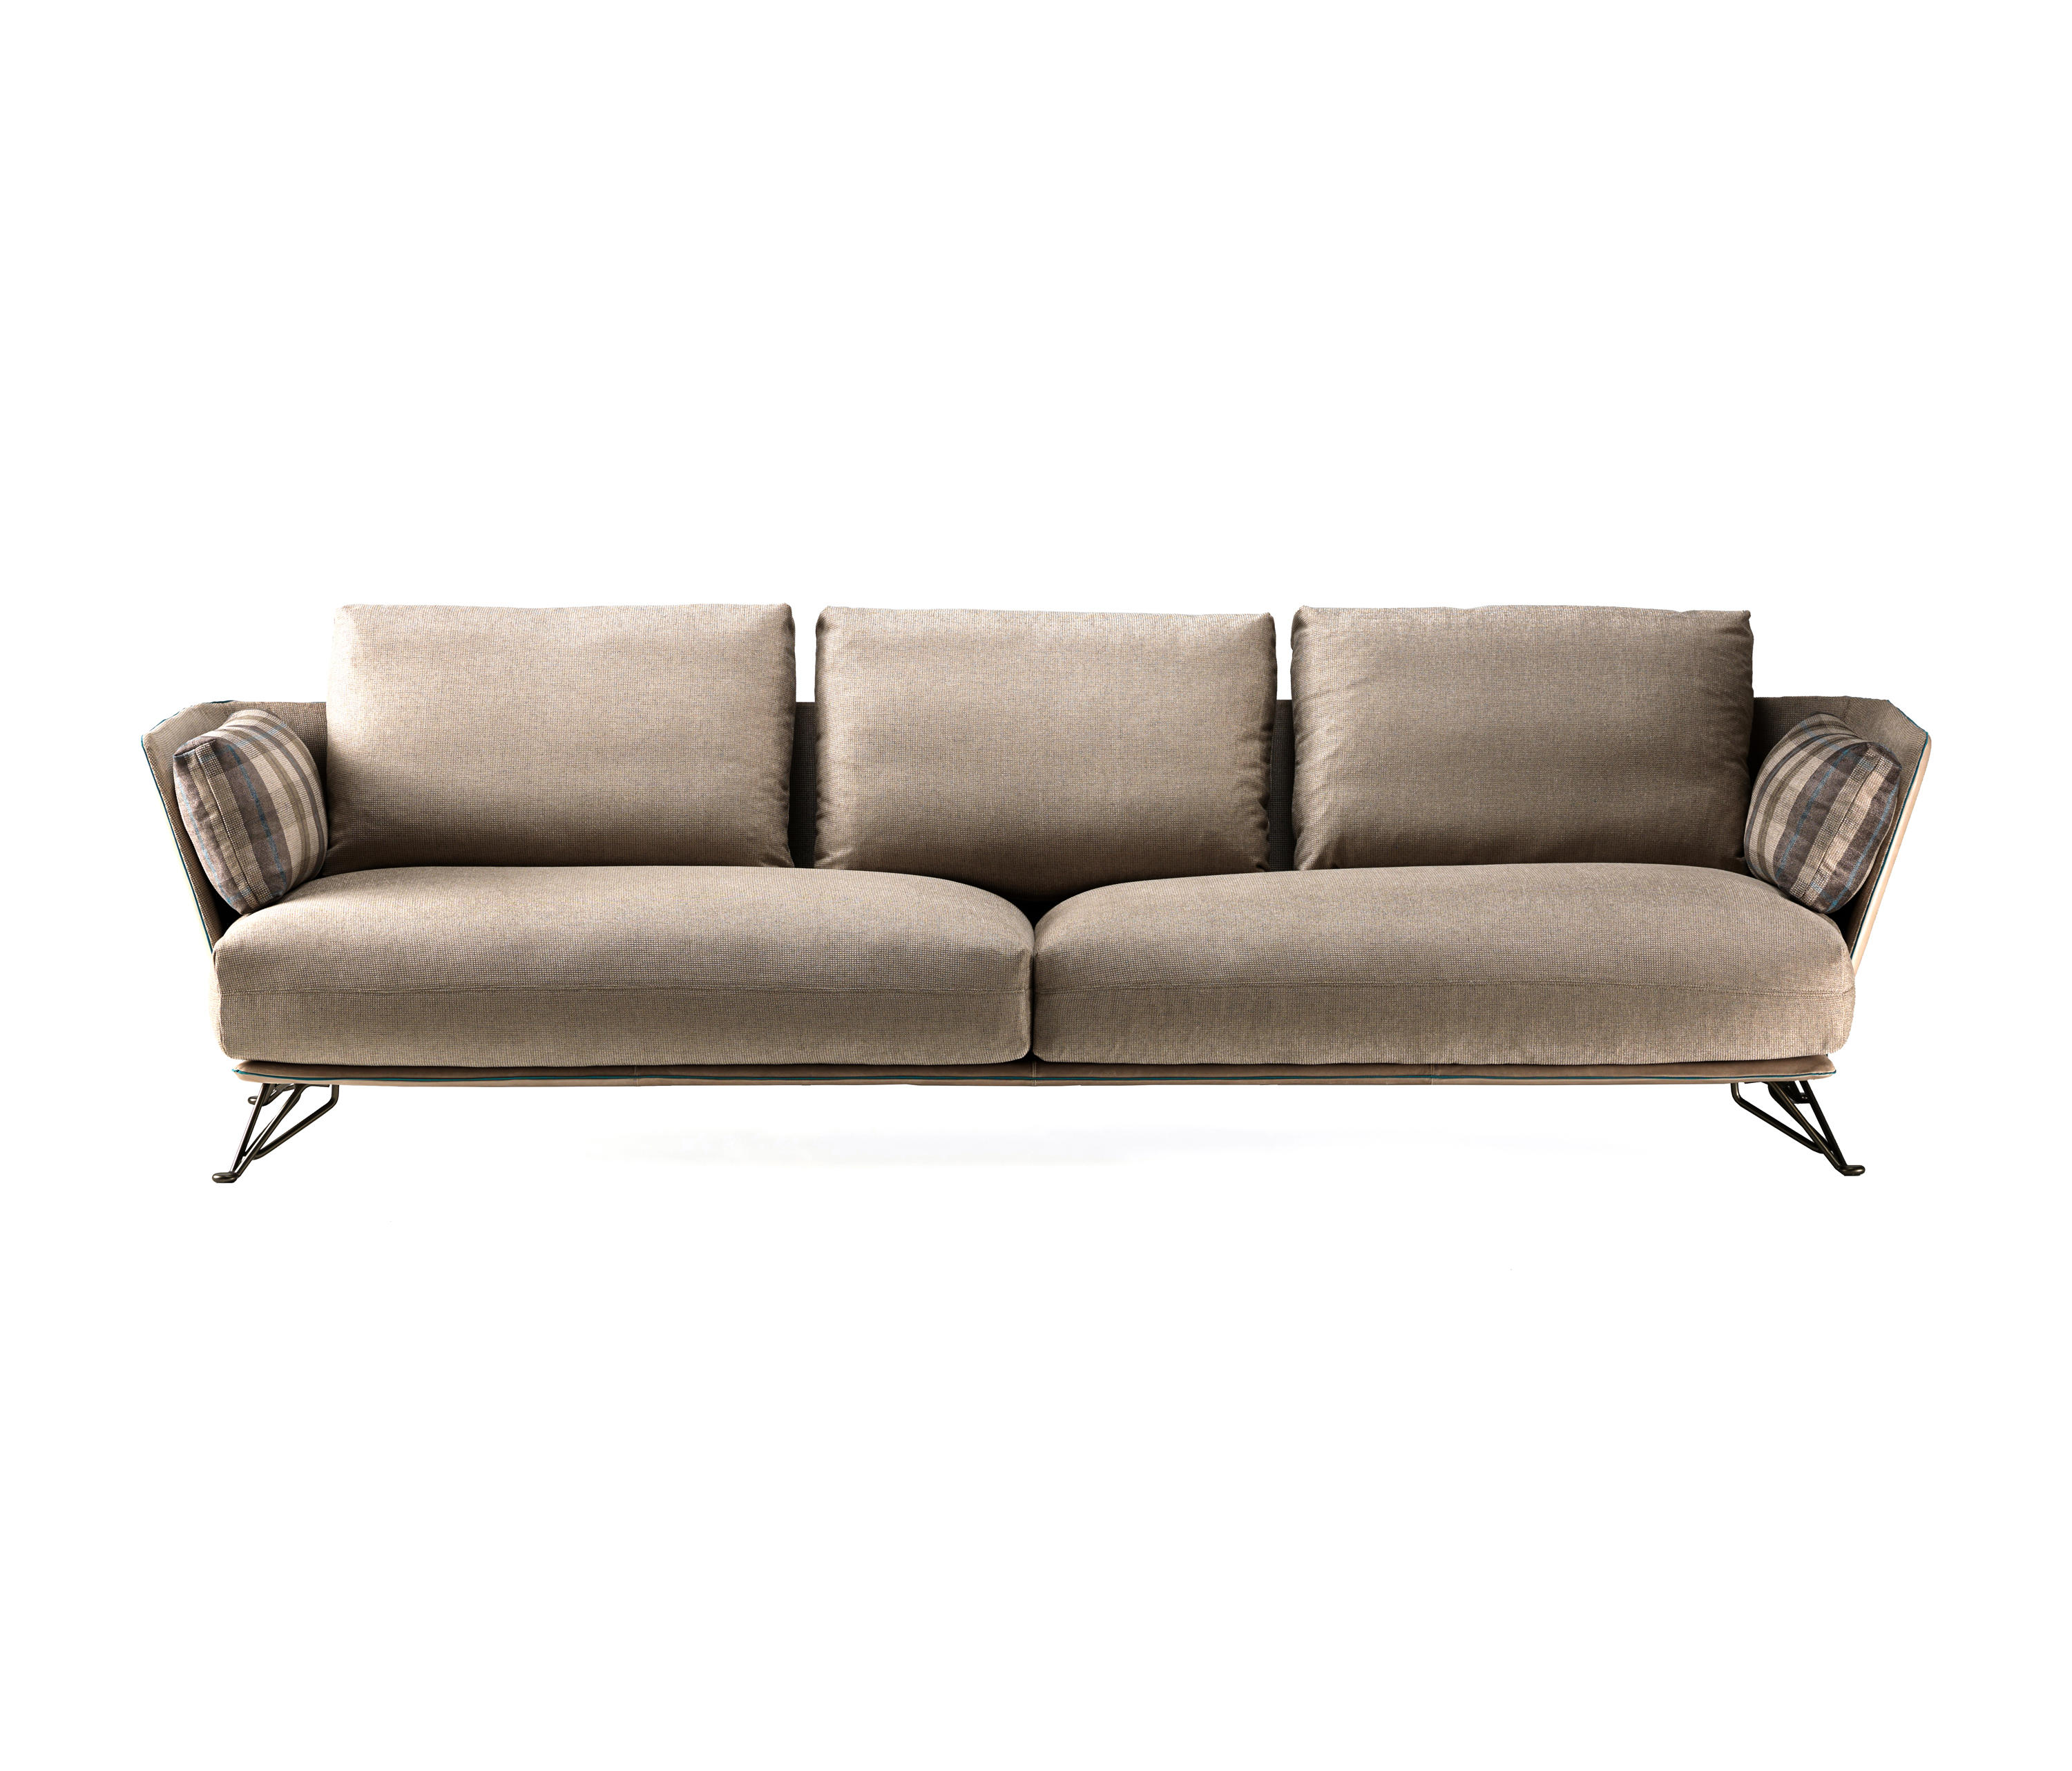 Rolf Benz Sofa Pfister Morrison Sofas From Arketipo Architonic